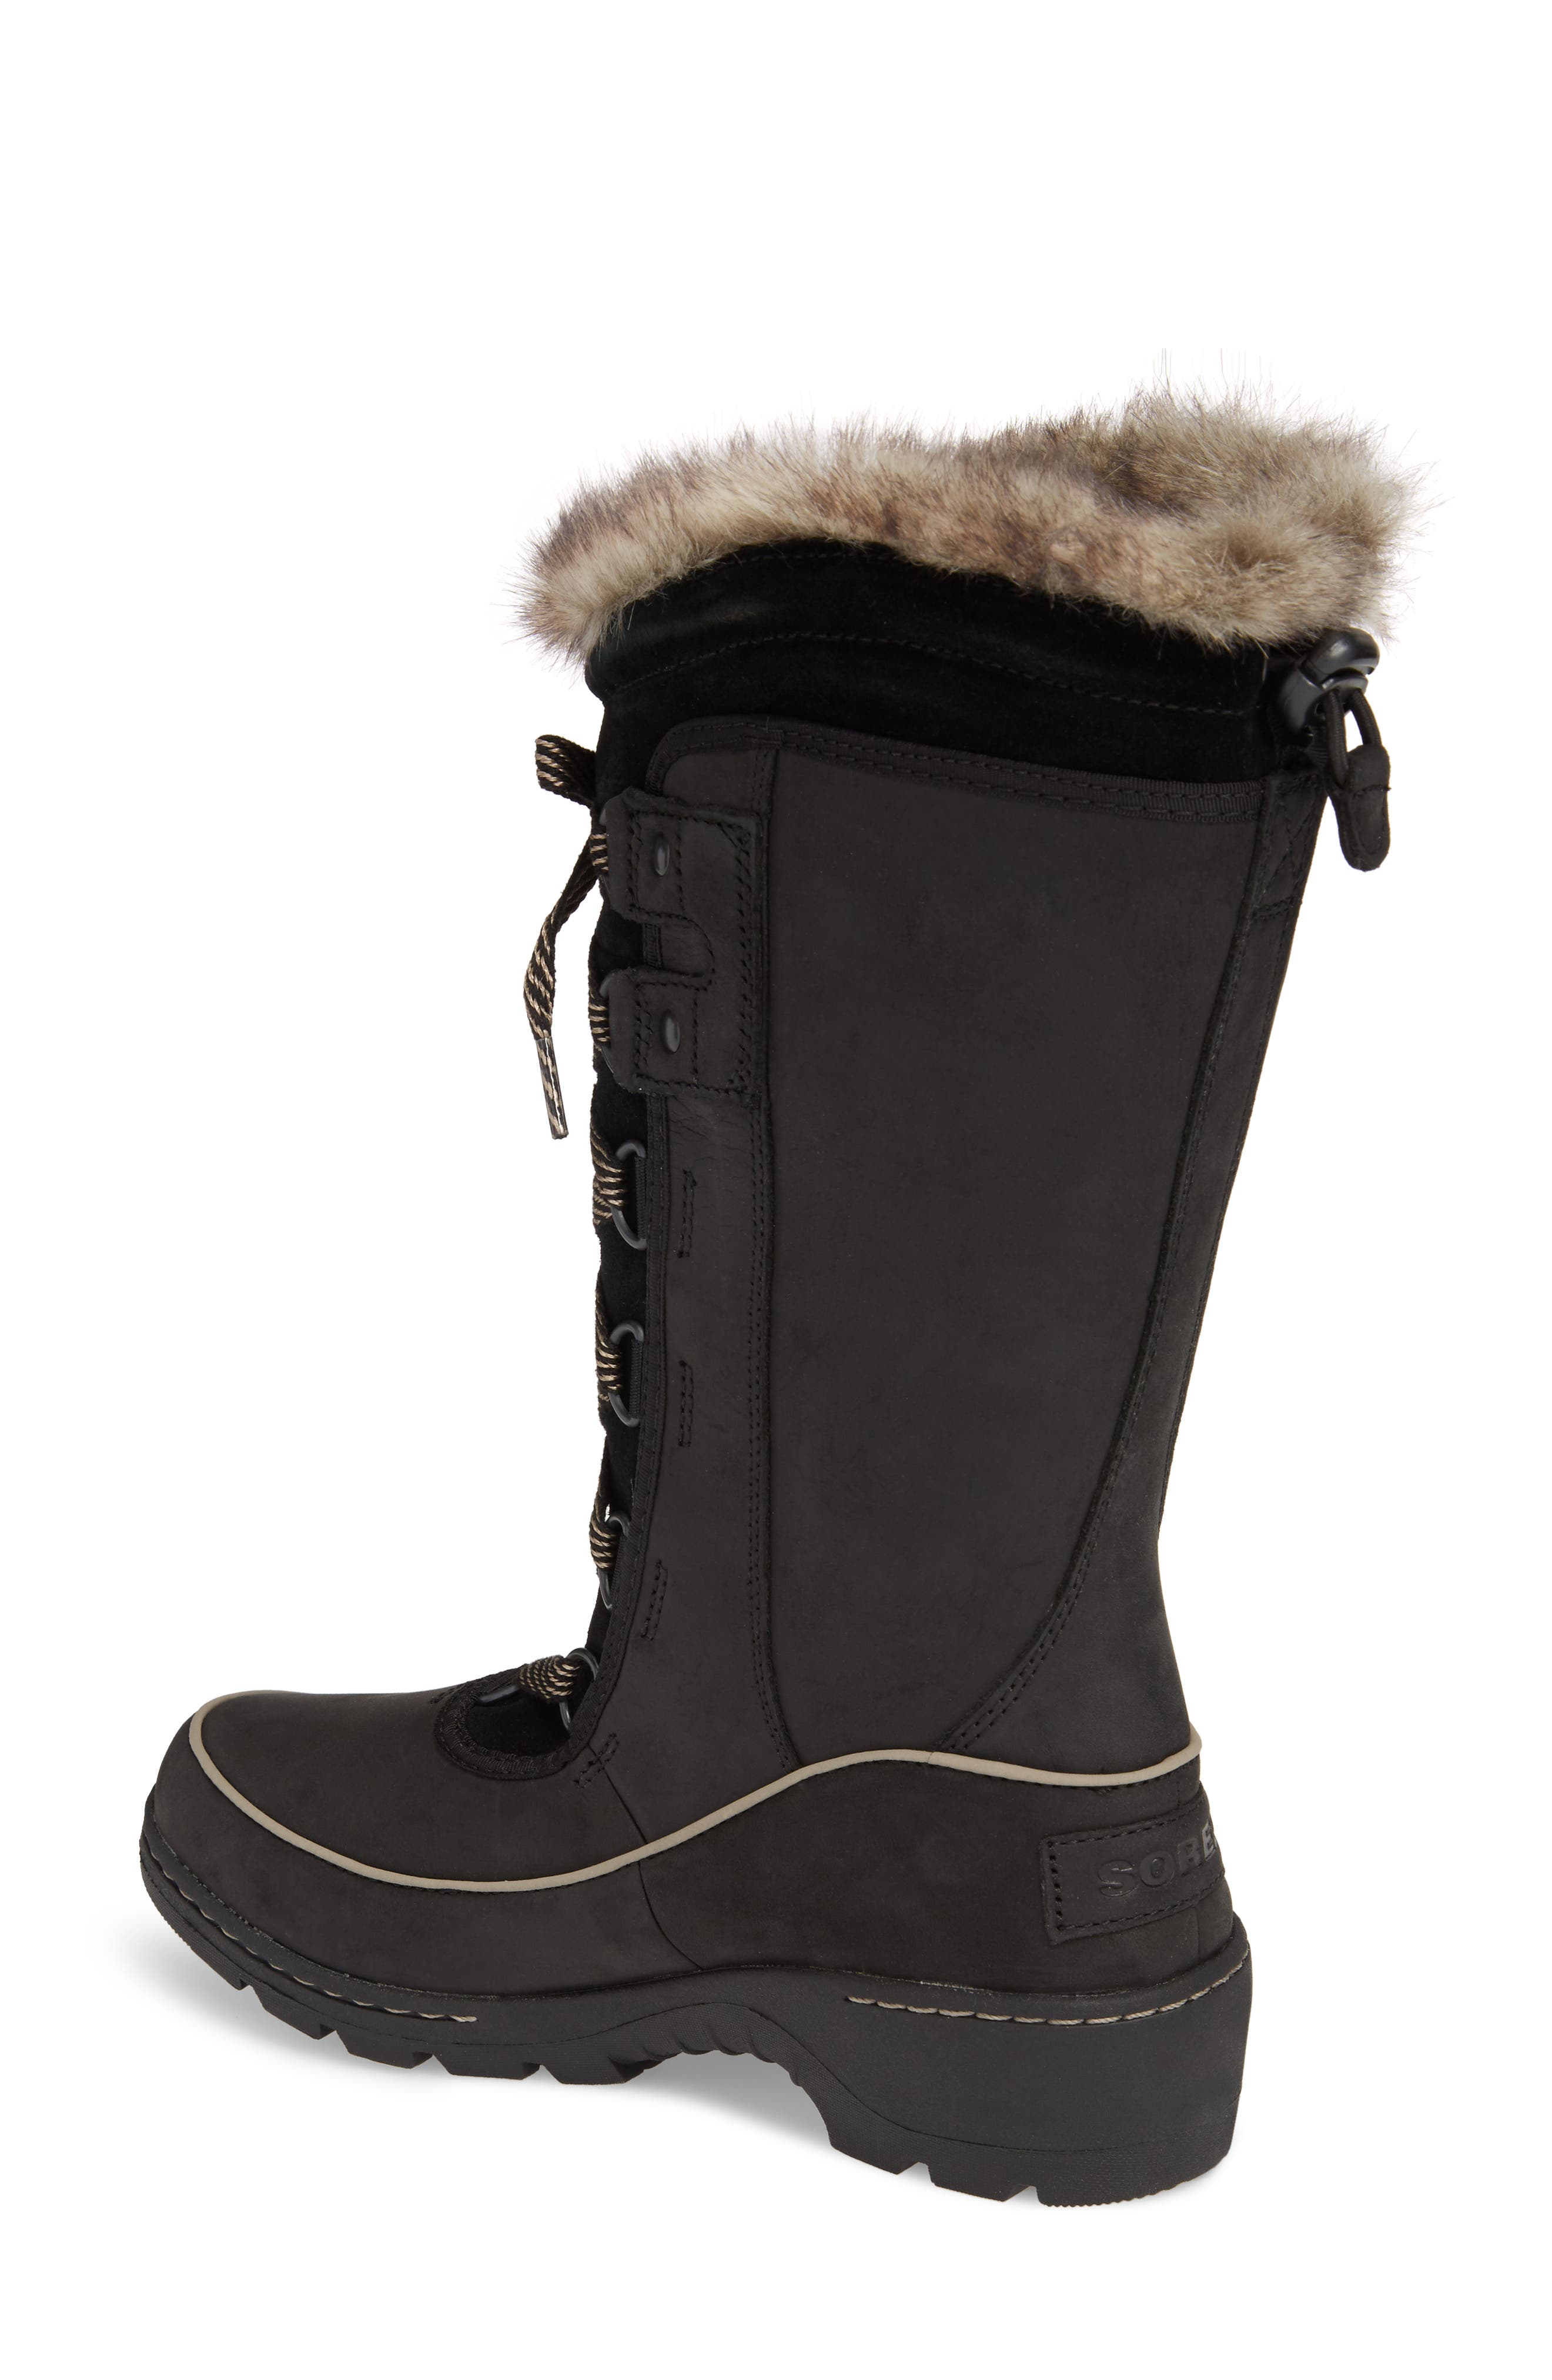 Alternate Image 2  - SOREL Tivoli II Insulated Winter Boot with Faux Fur Trim (Women)